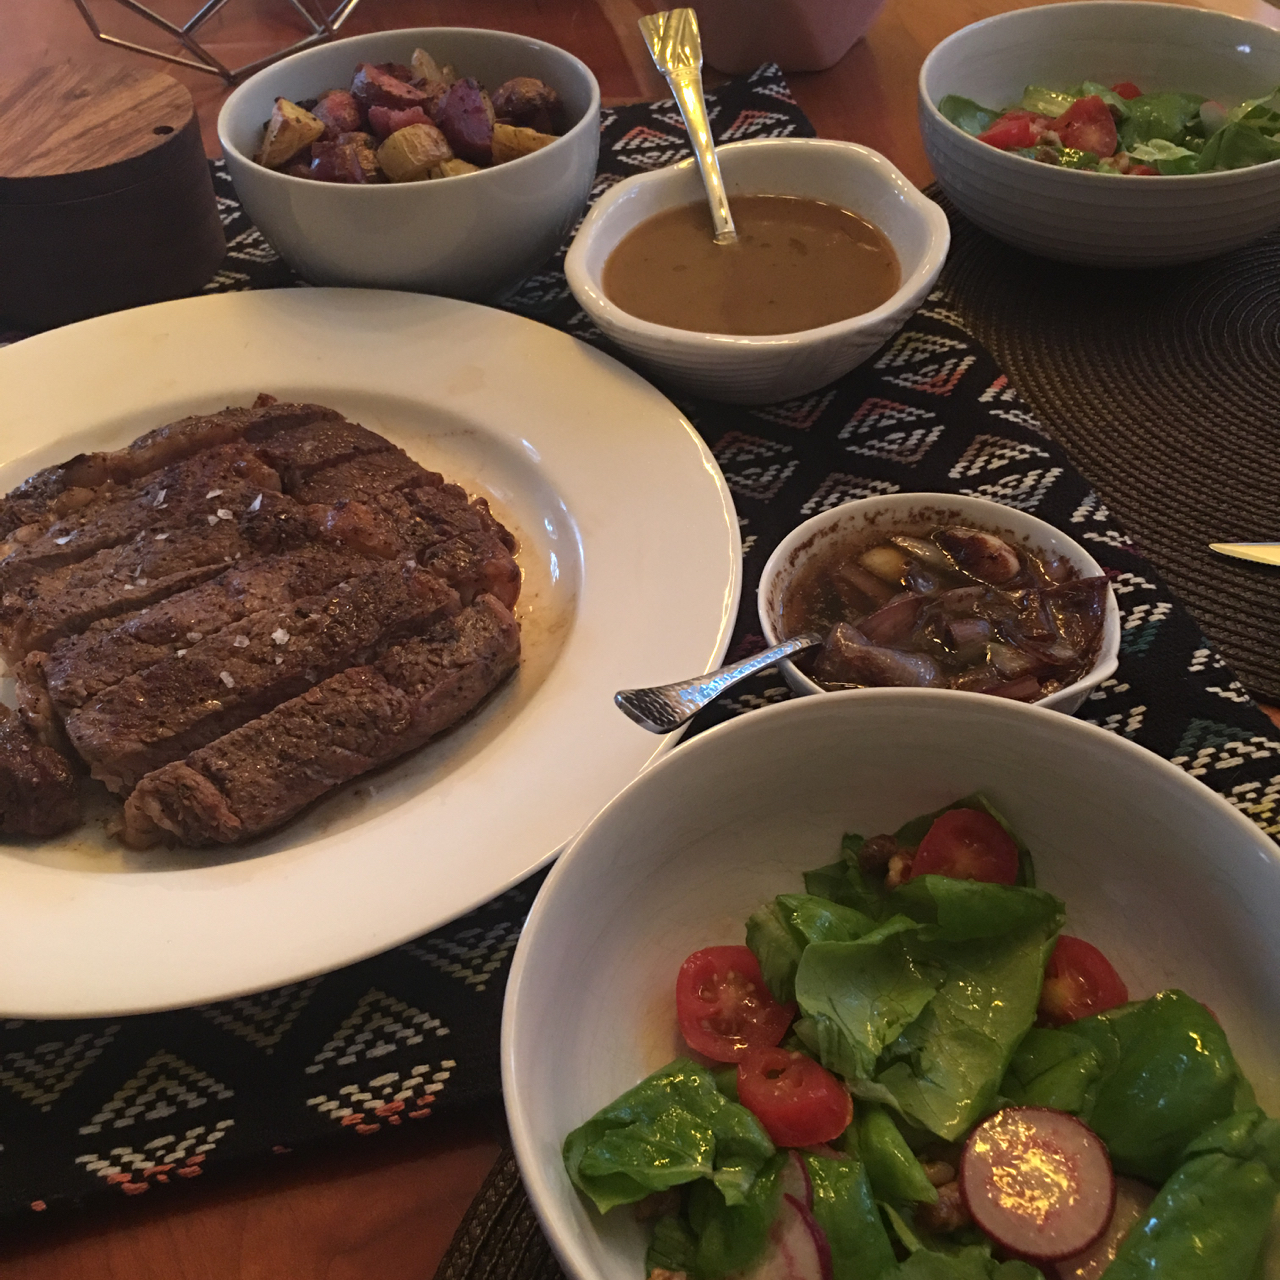 GHEE STEAK WITH ROASTED RAINBOW POTATOES, A RED ONION AND GARLIC SAUCE AND A BIBB LETTUCE SALAD WITH TOMATOES AND RADISHES IN A LEMON VINAIGRETTE